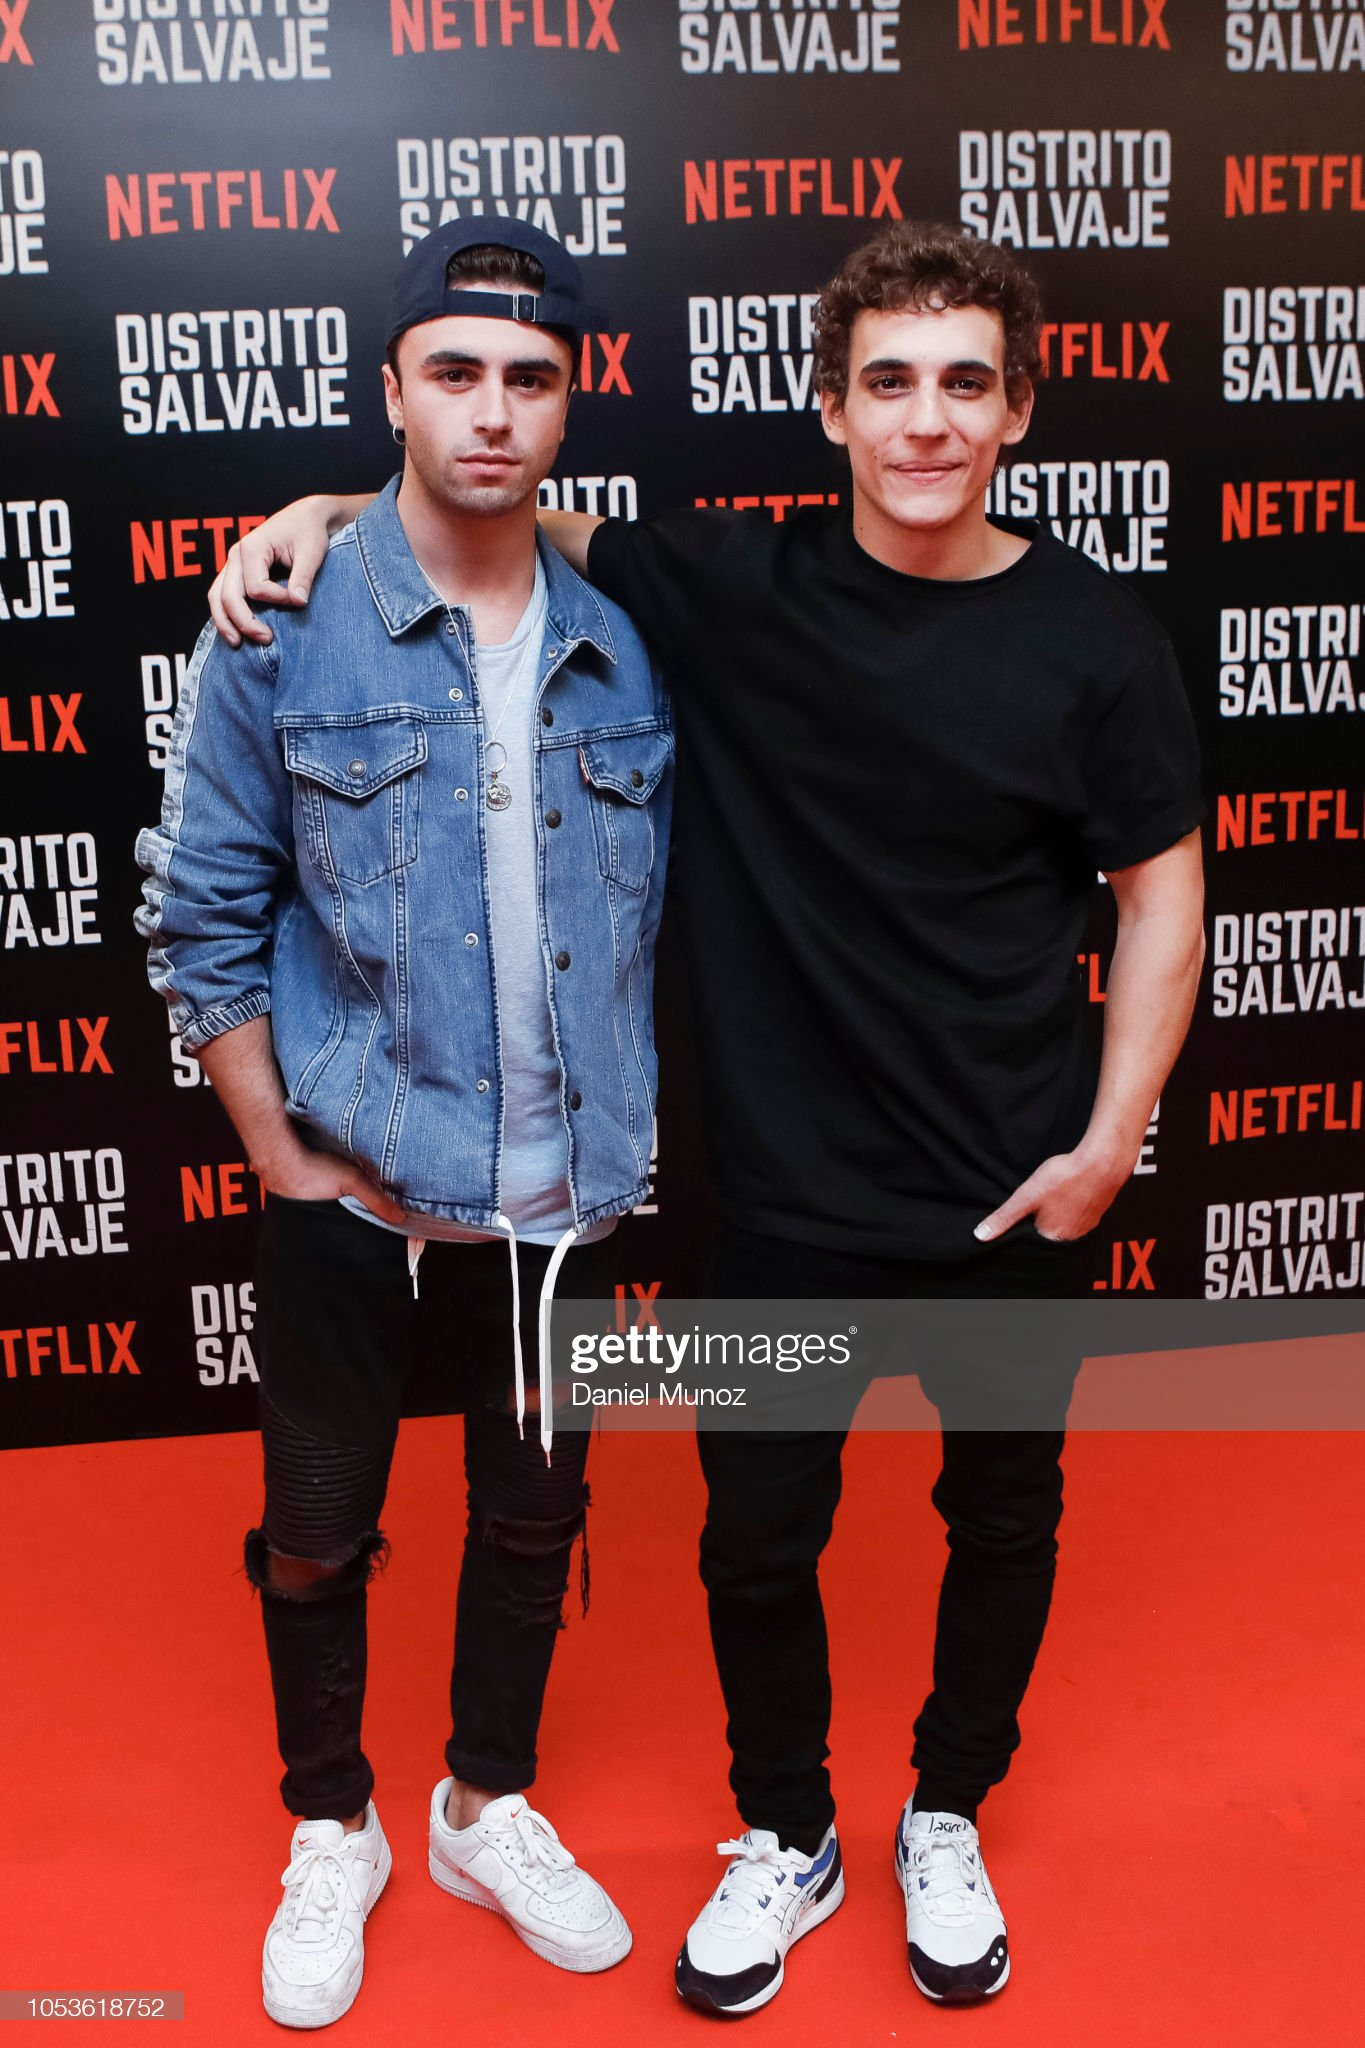 ¿Cuánto mide Itzan Escamilla? - Altura Itzan-escamilla-and-miguel-herran-pose-at-the-red-carpet-of-the-picture-id1053618752?s=2048x2048